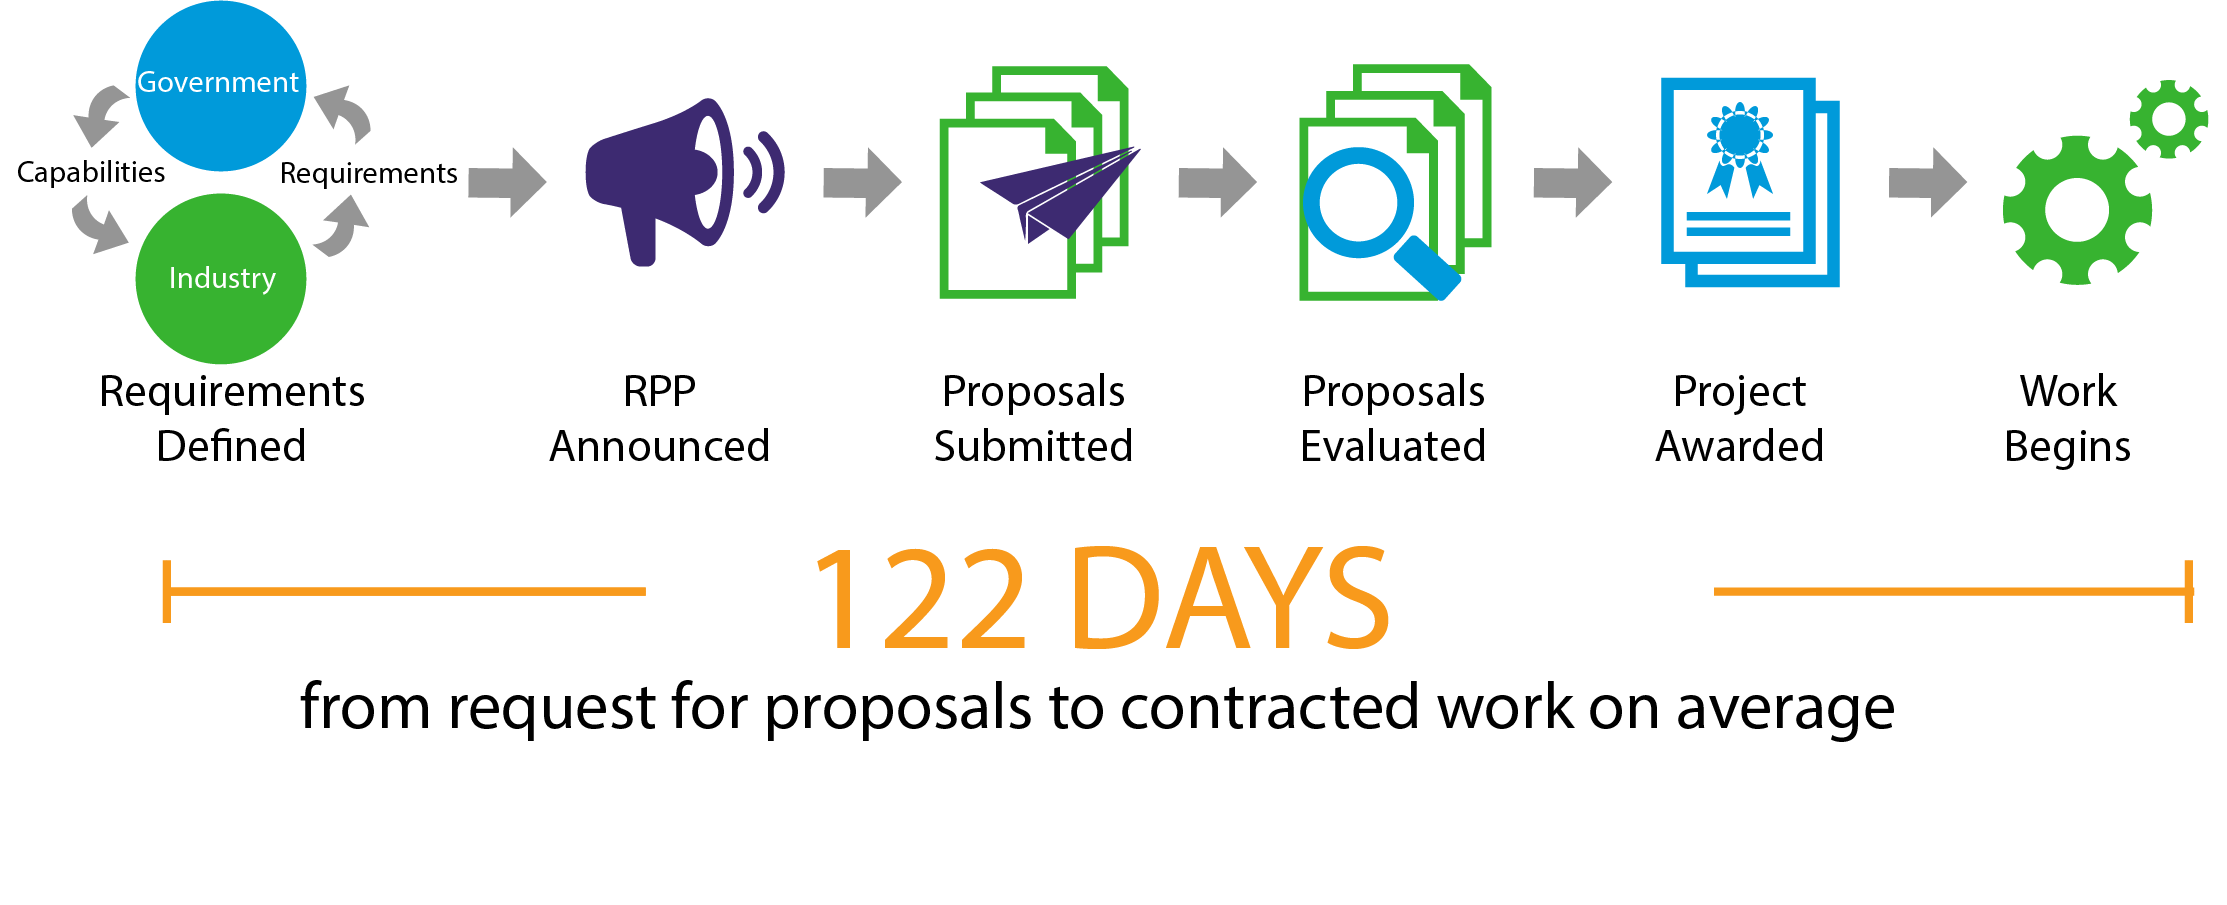 Government and Industry define requirements and capabilities. The RPP is announced. Proposals are submitted by members, then evaluated by government. The project is awarded and work begins. 122 days from request for proposals to contracted work on average.